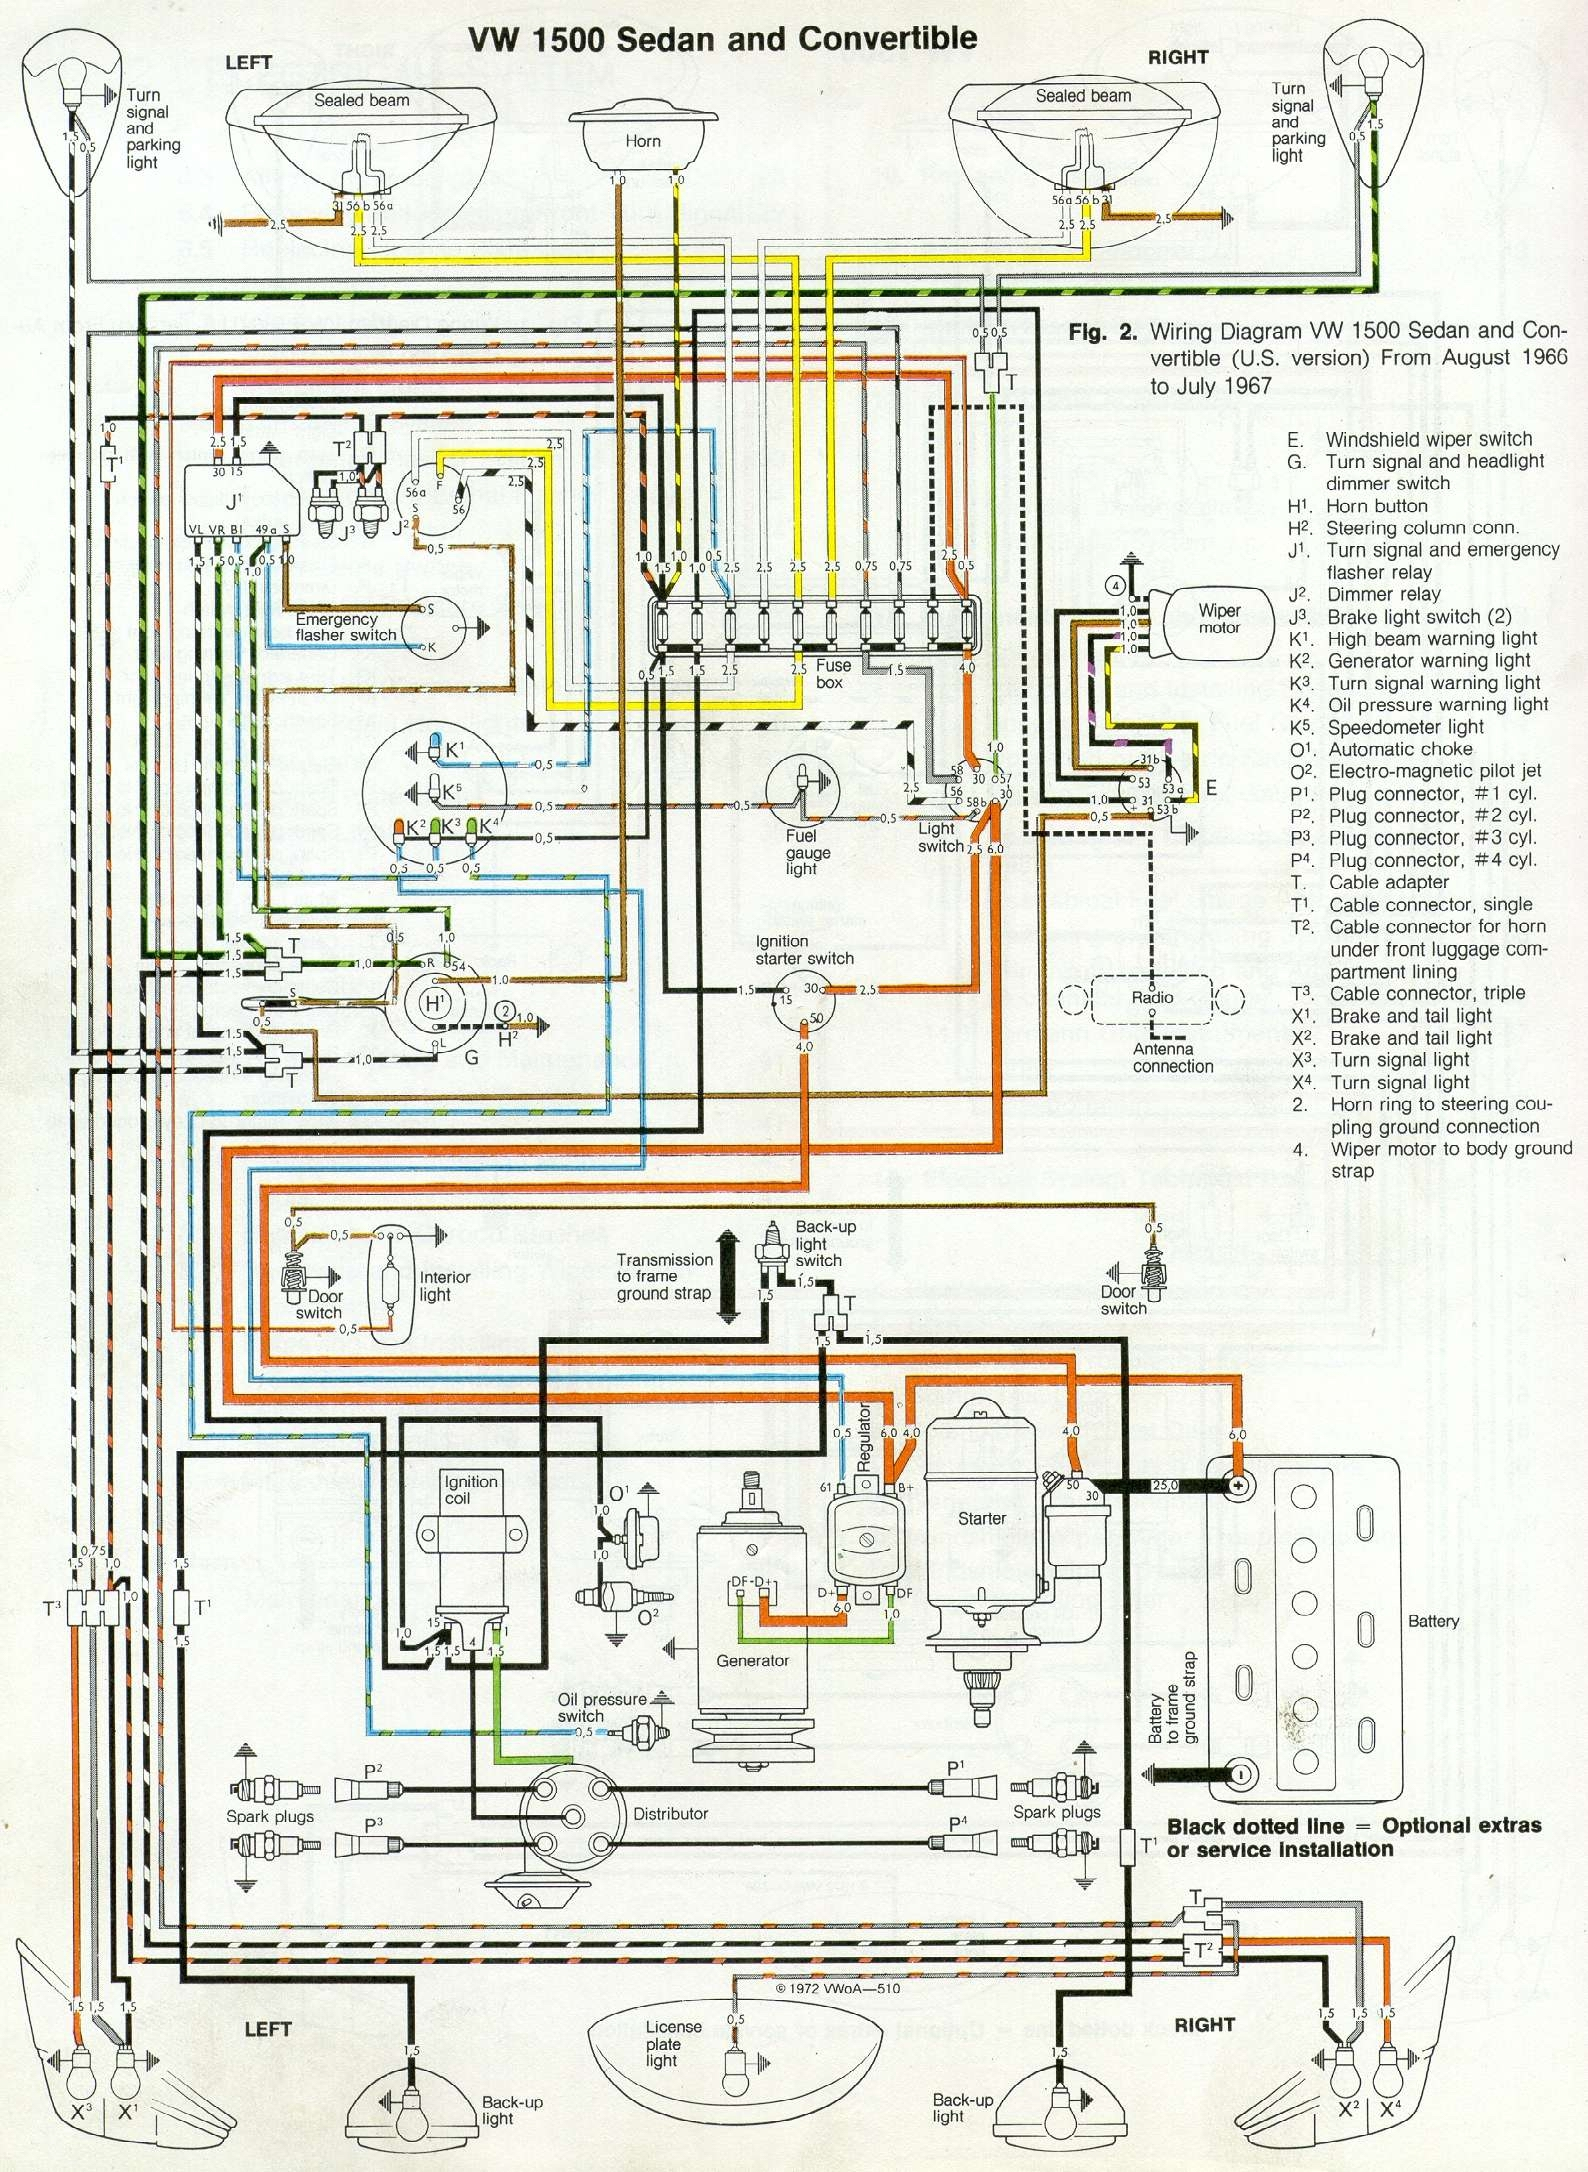 66 and '67 vw beetle wiring diagram – 1967 vw beetle  1967 vw beetle